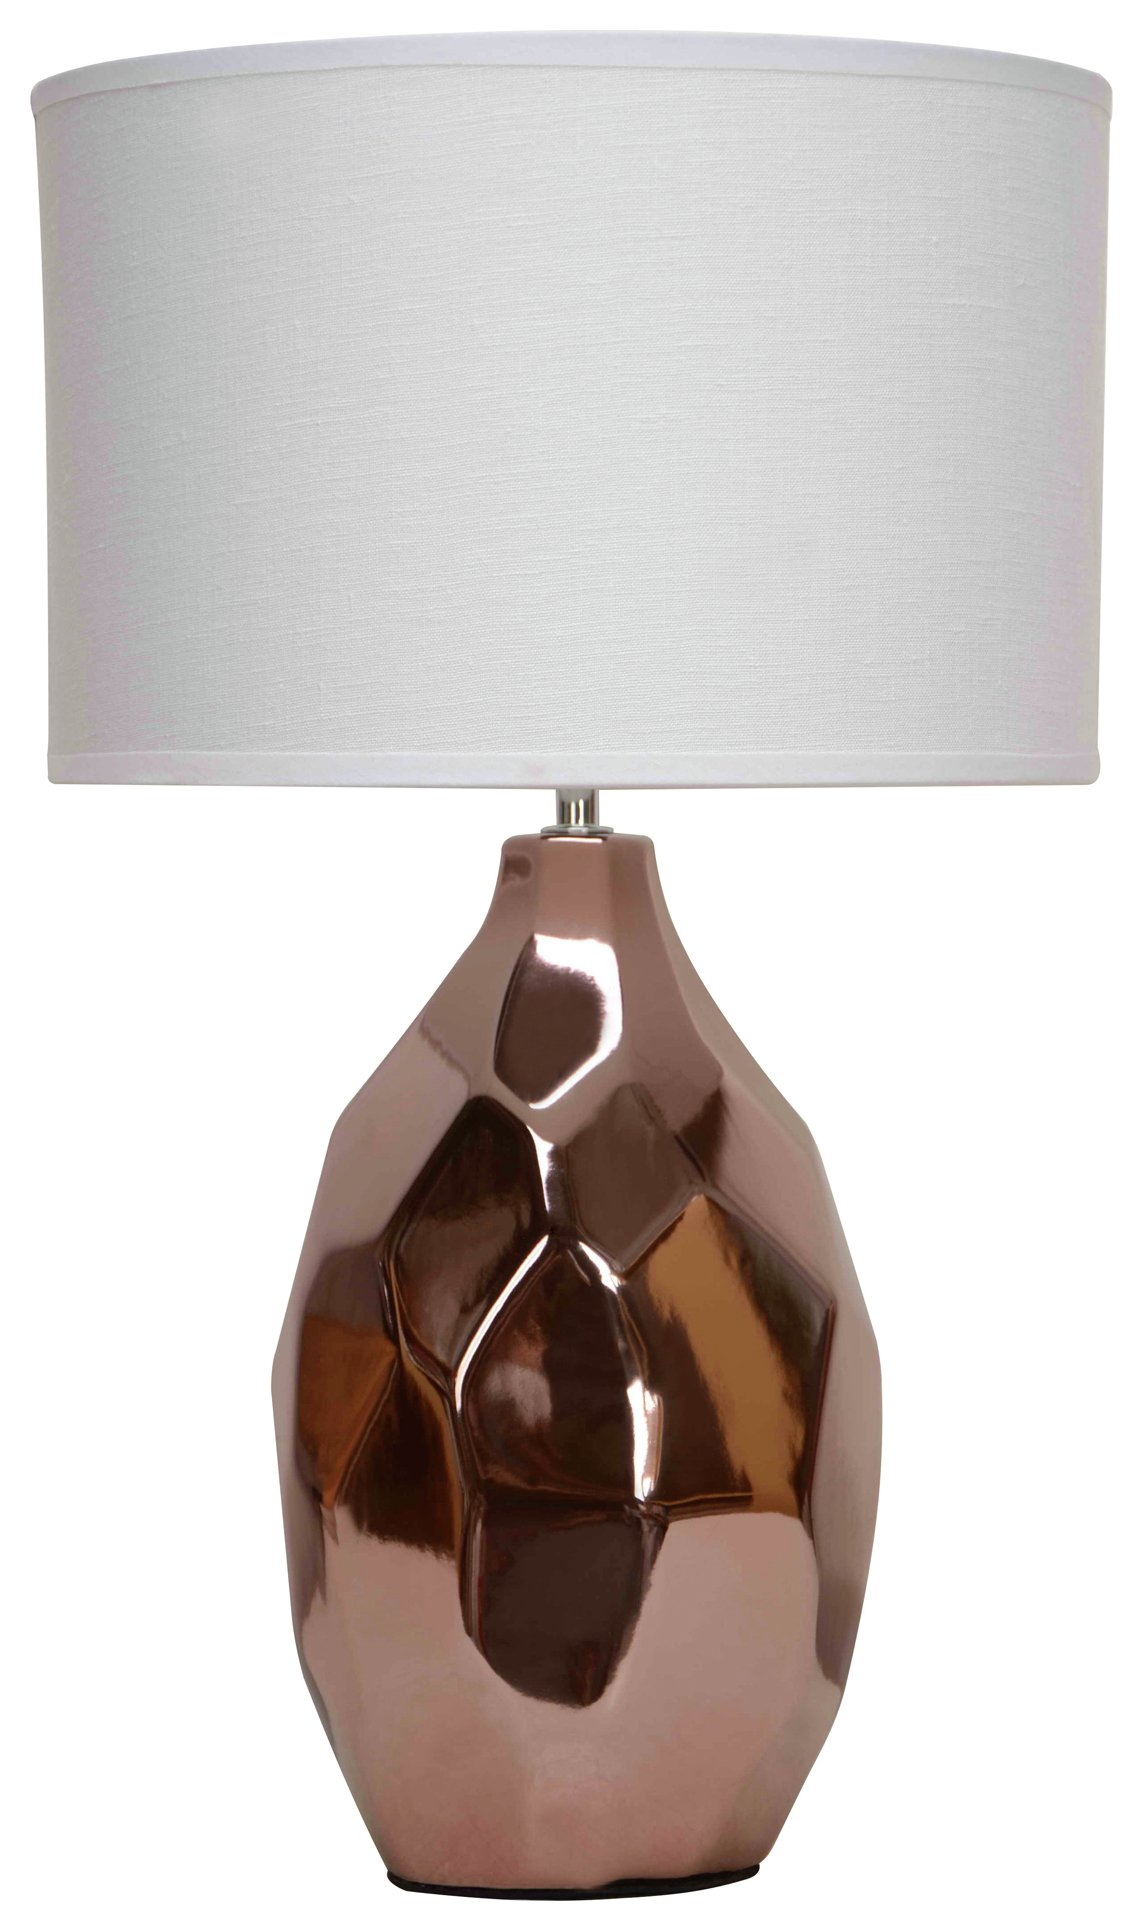 Image of West - Ceramic - Table Lamp - Ivory